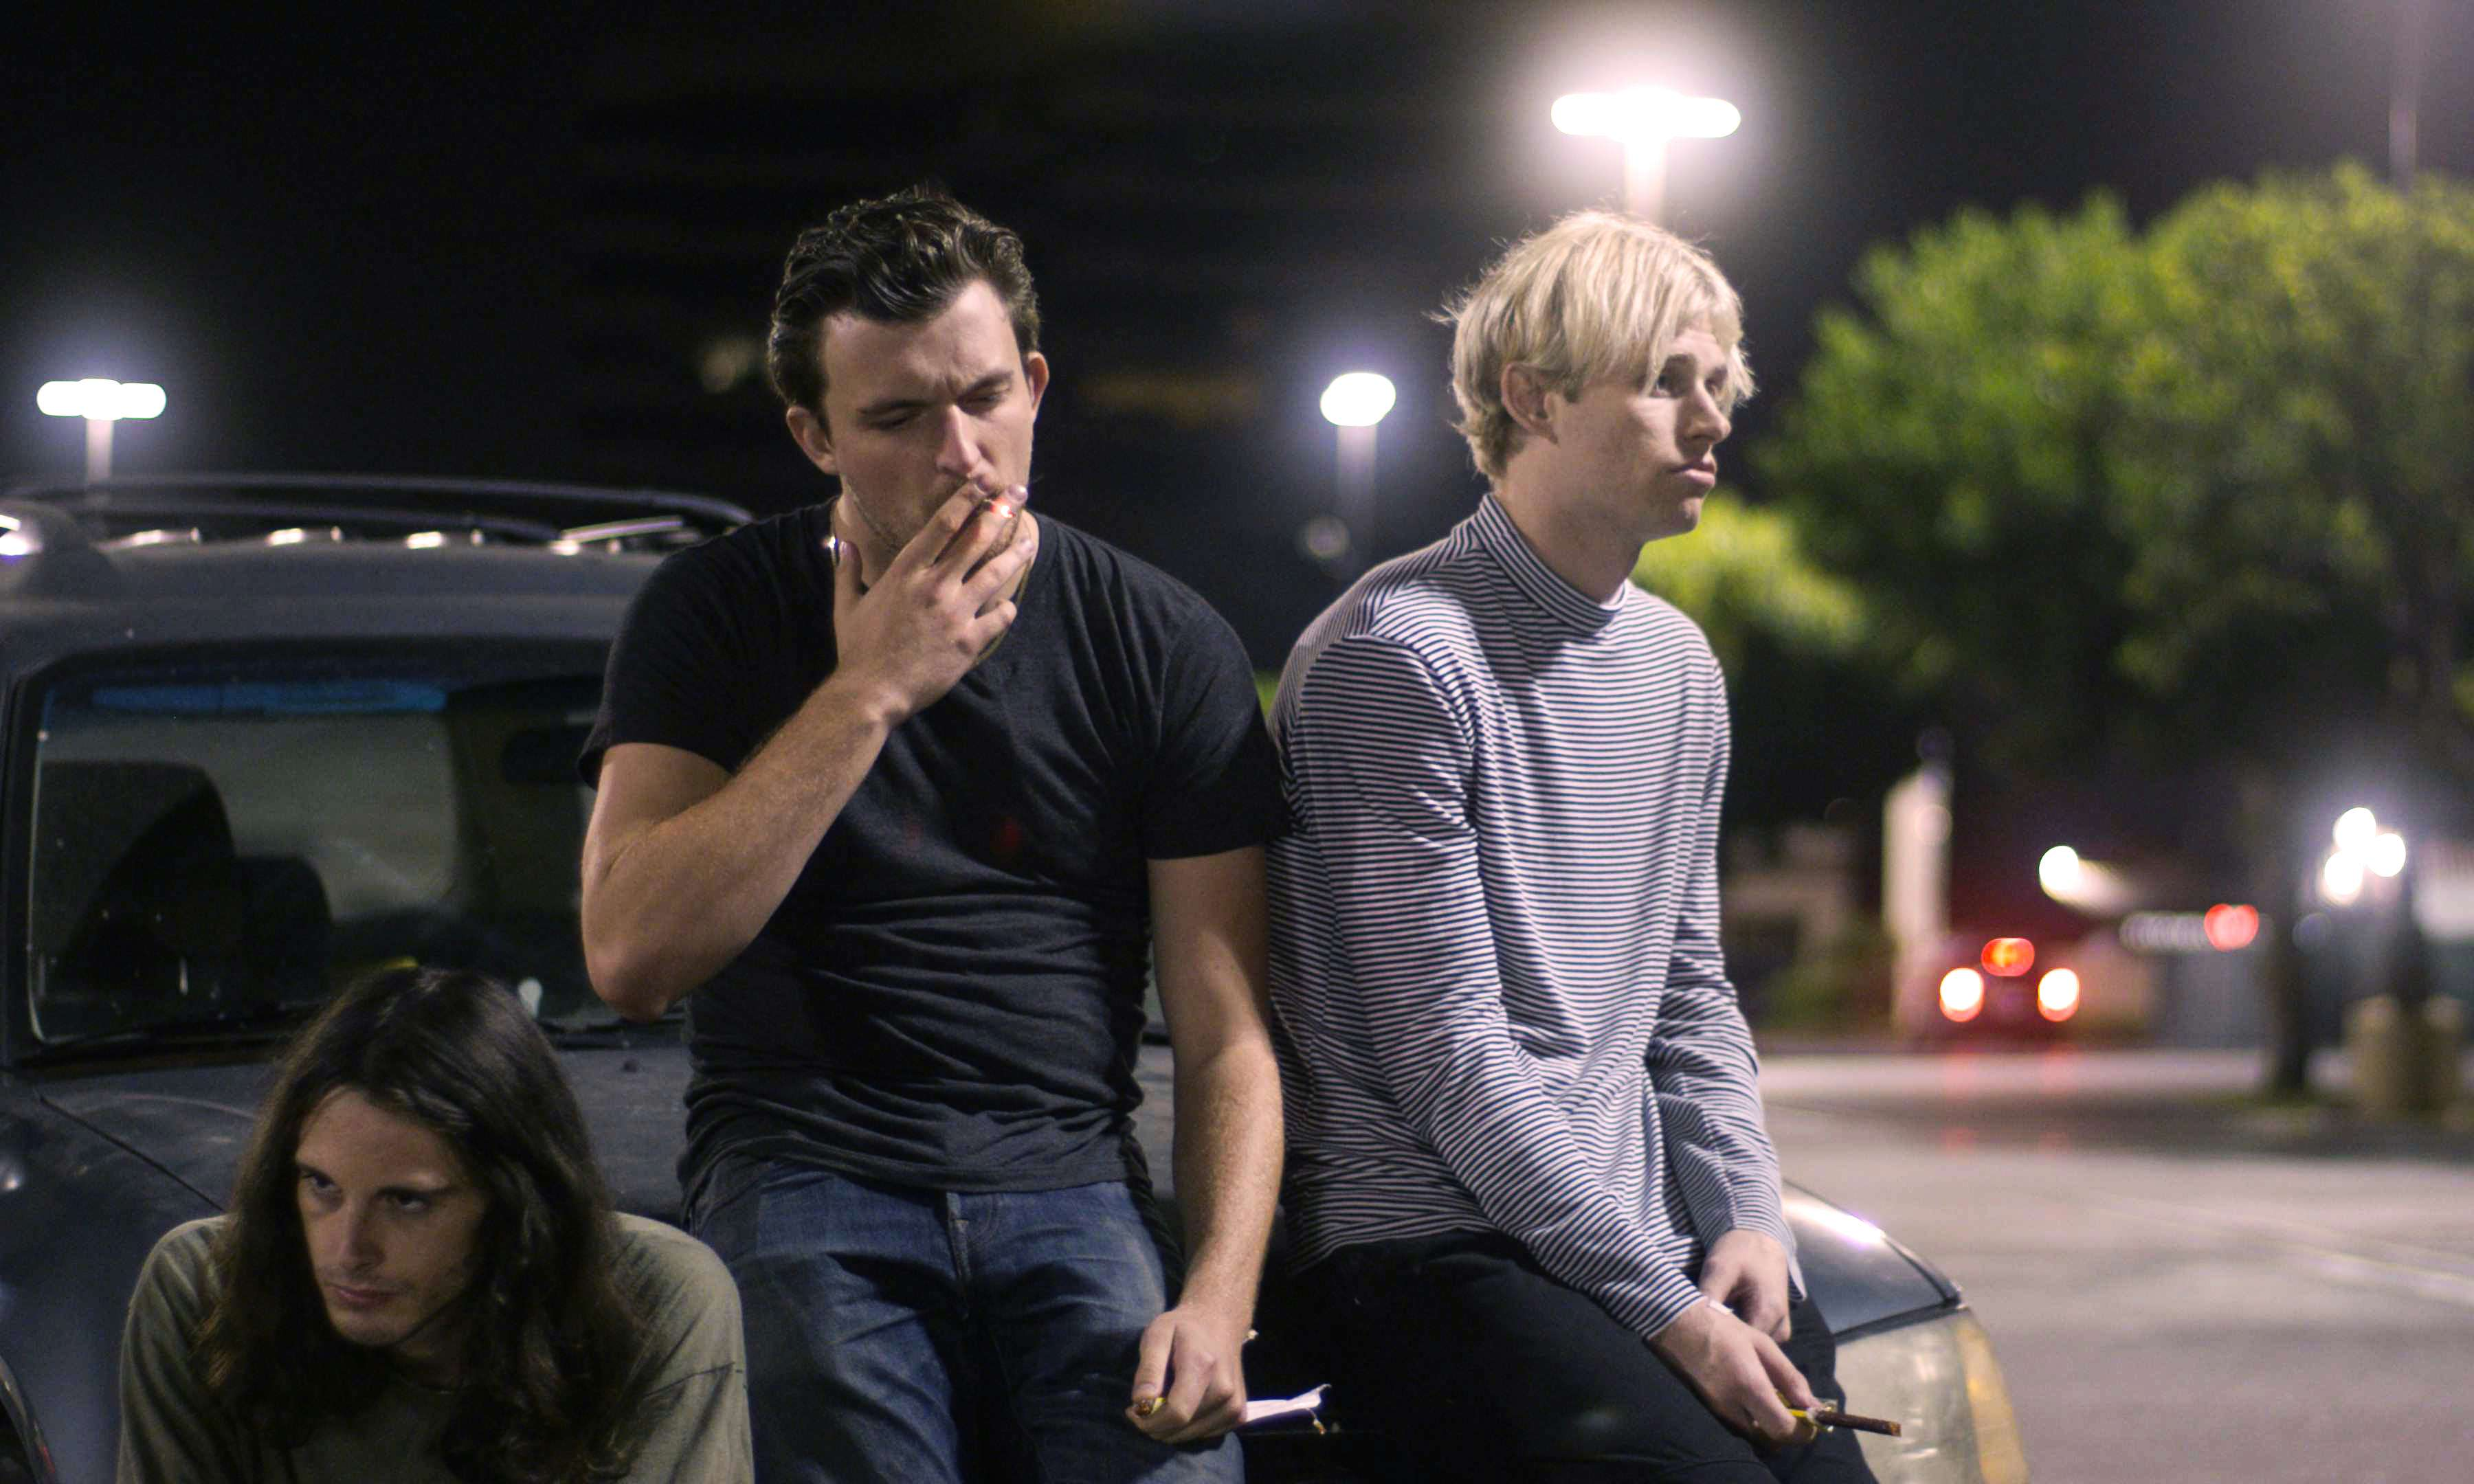 Three teenage boys sit on the hood of a car in a parking lot at night. The middle one, in a black t-shirt and jeans, is smoking, as is the blonde on the right.